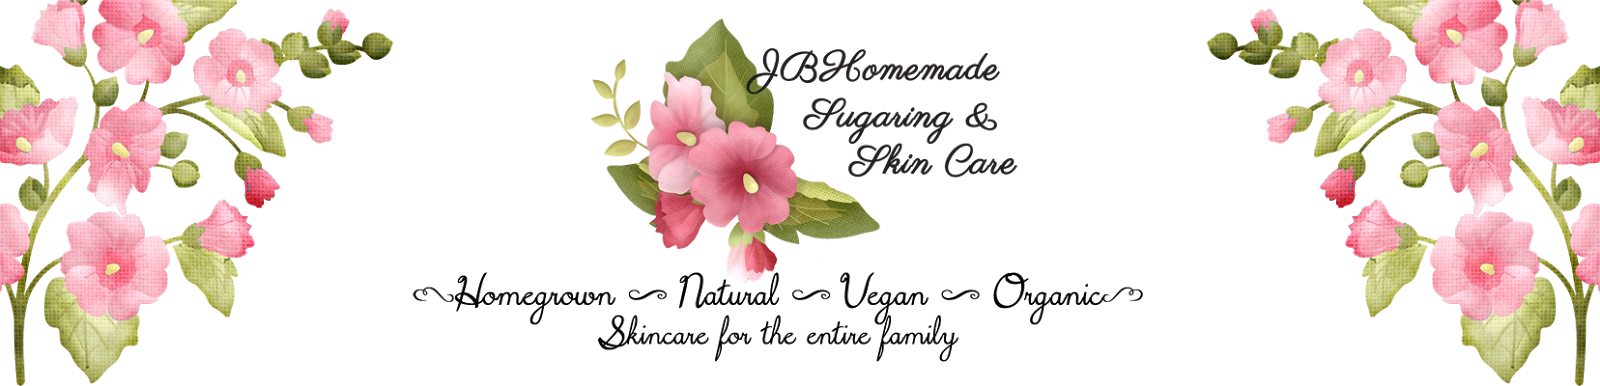 JBHomemade Shop